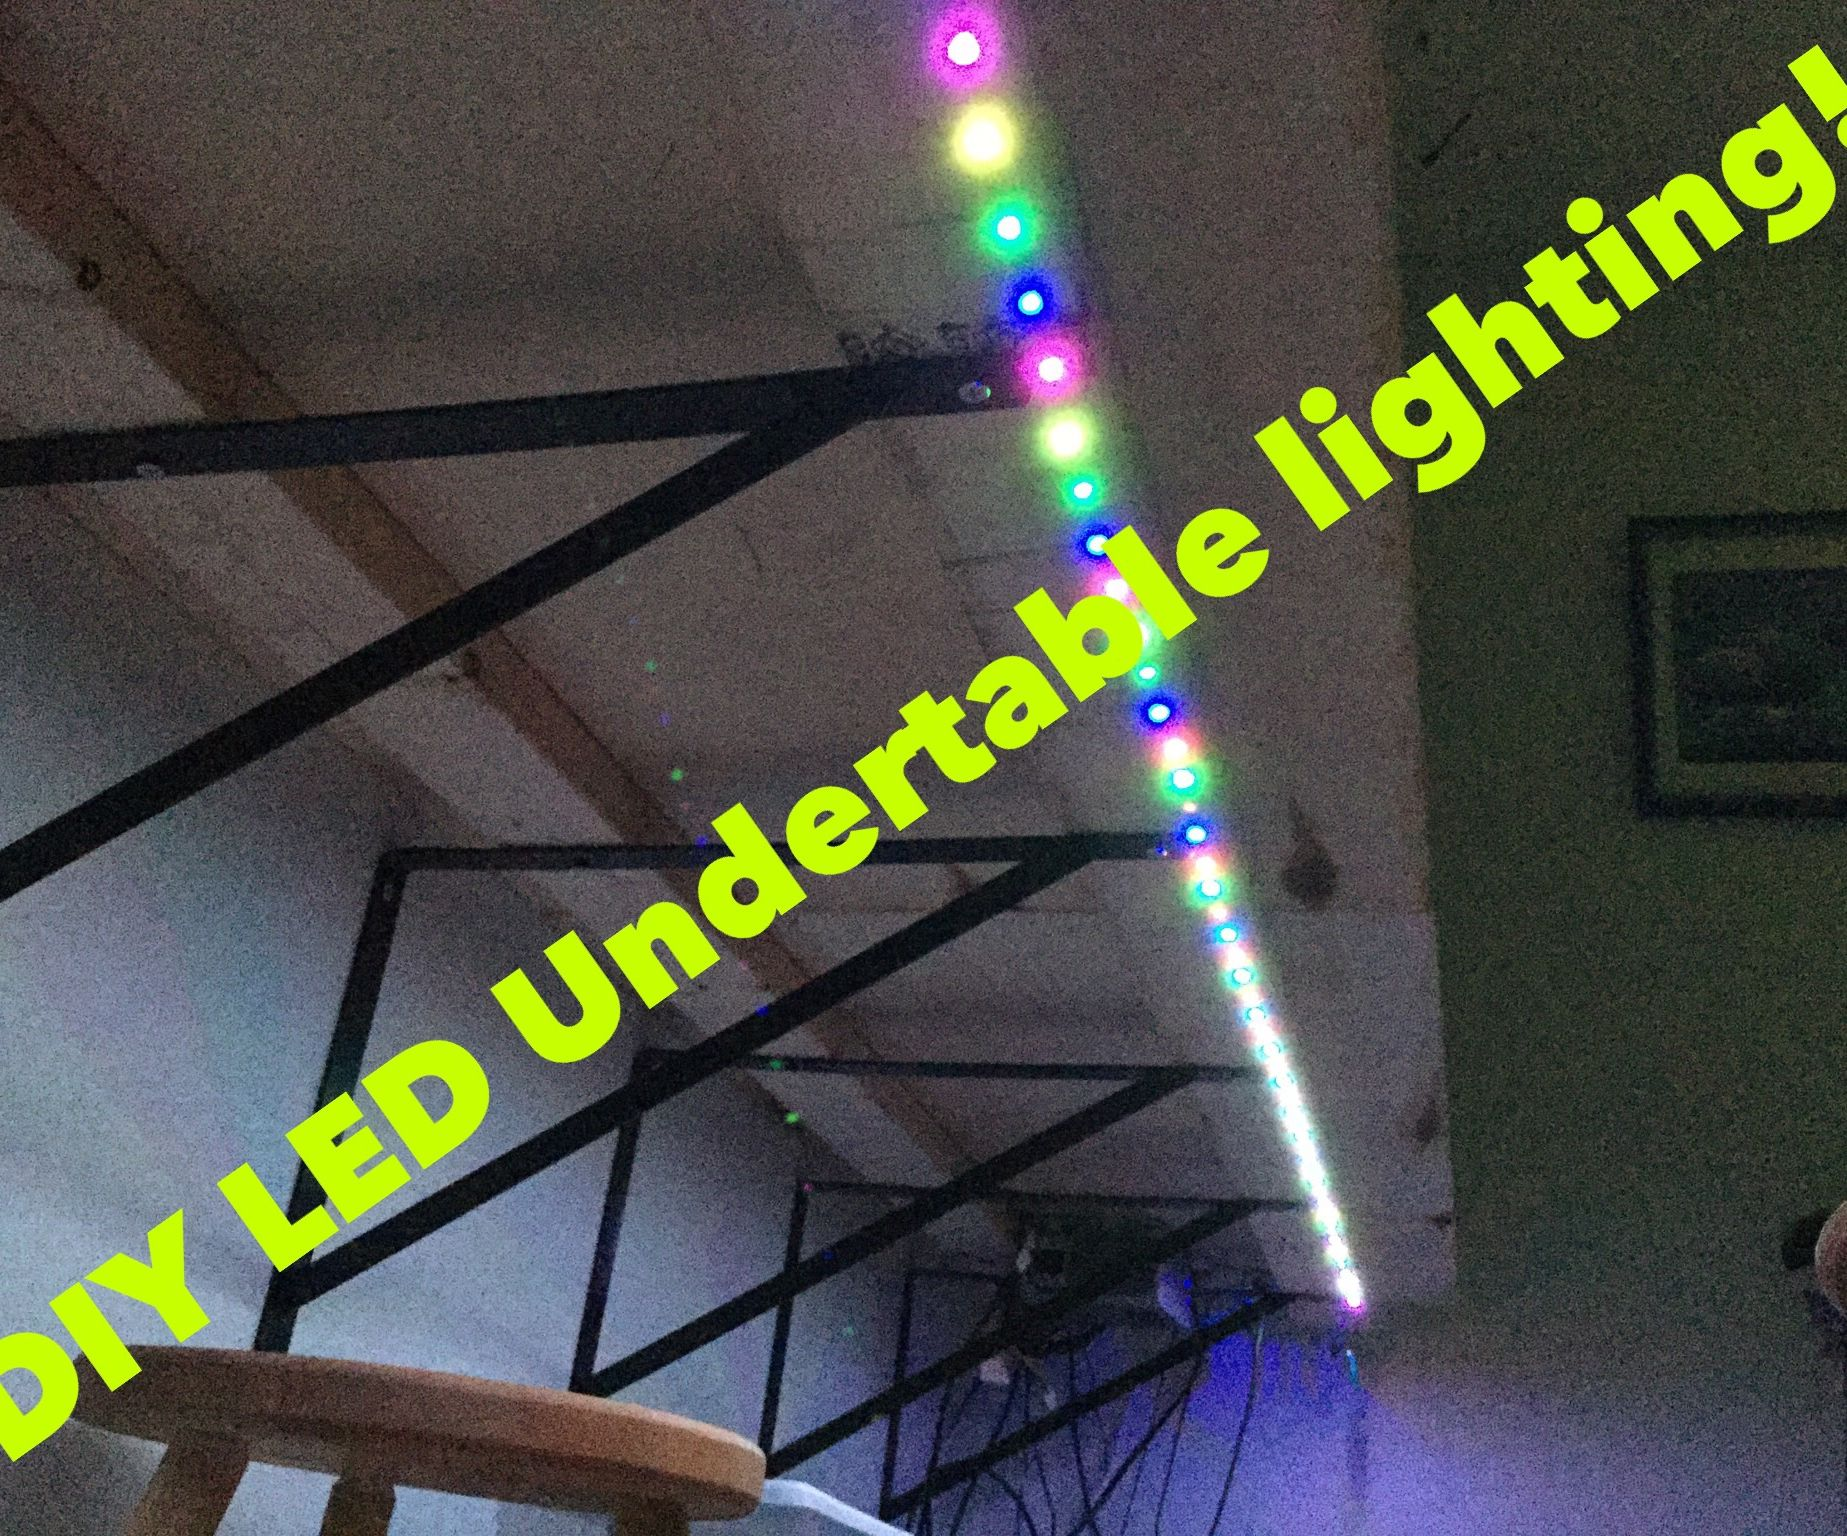 Under table LED lighting (with WS2821b LEDs)